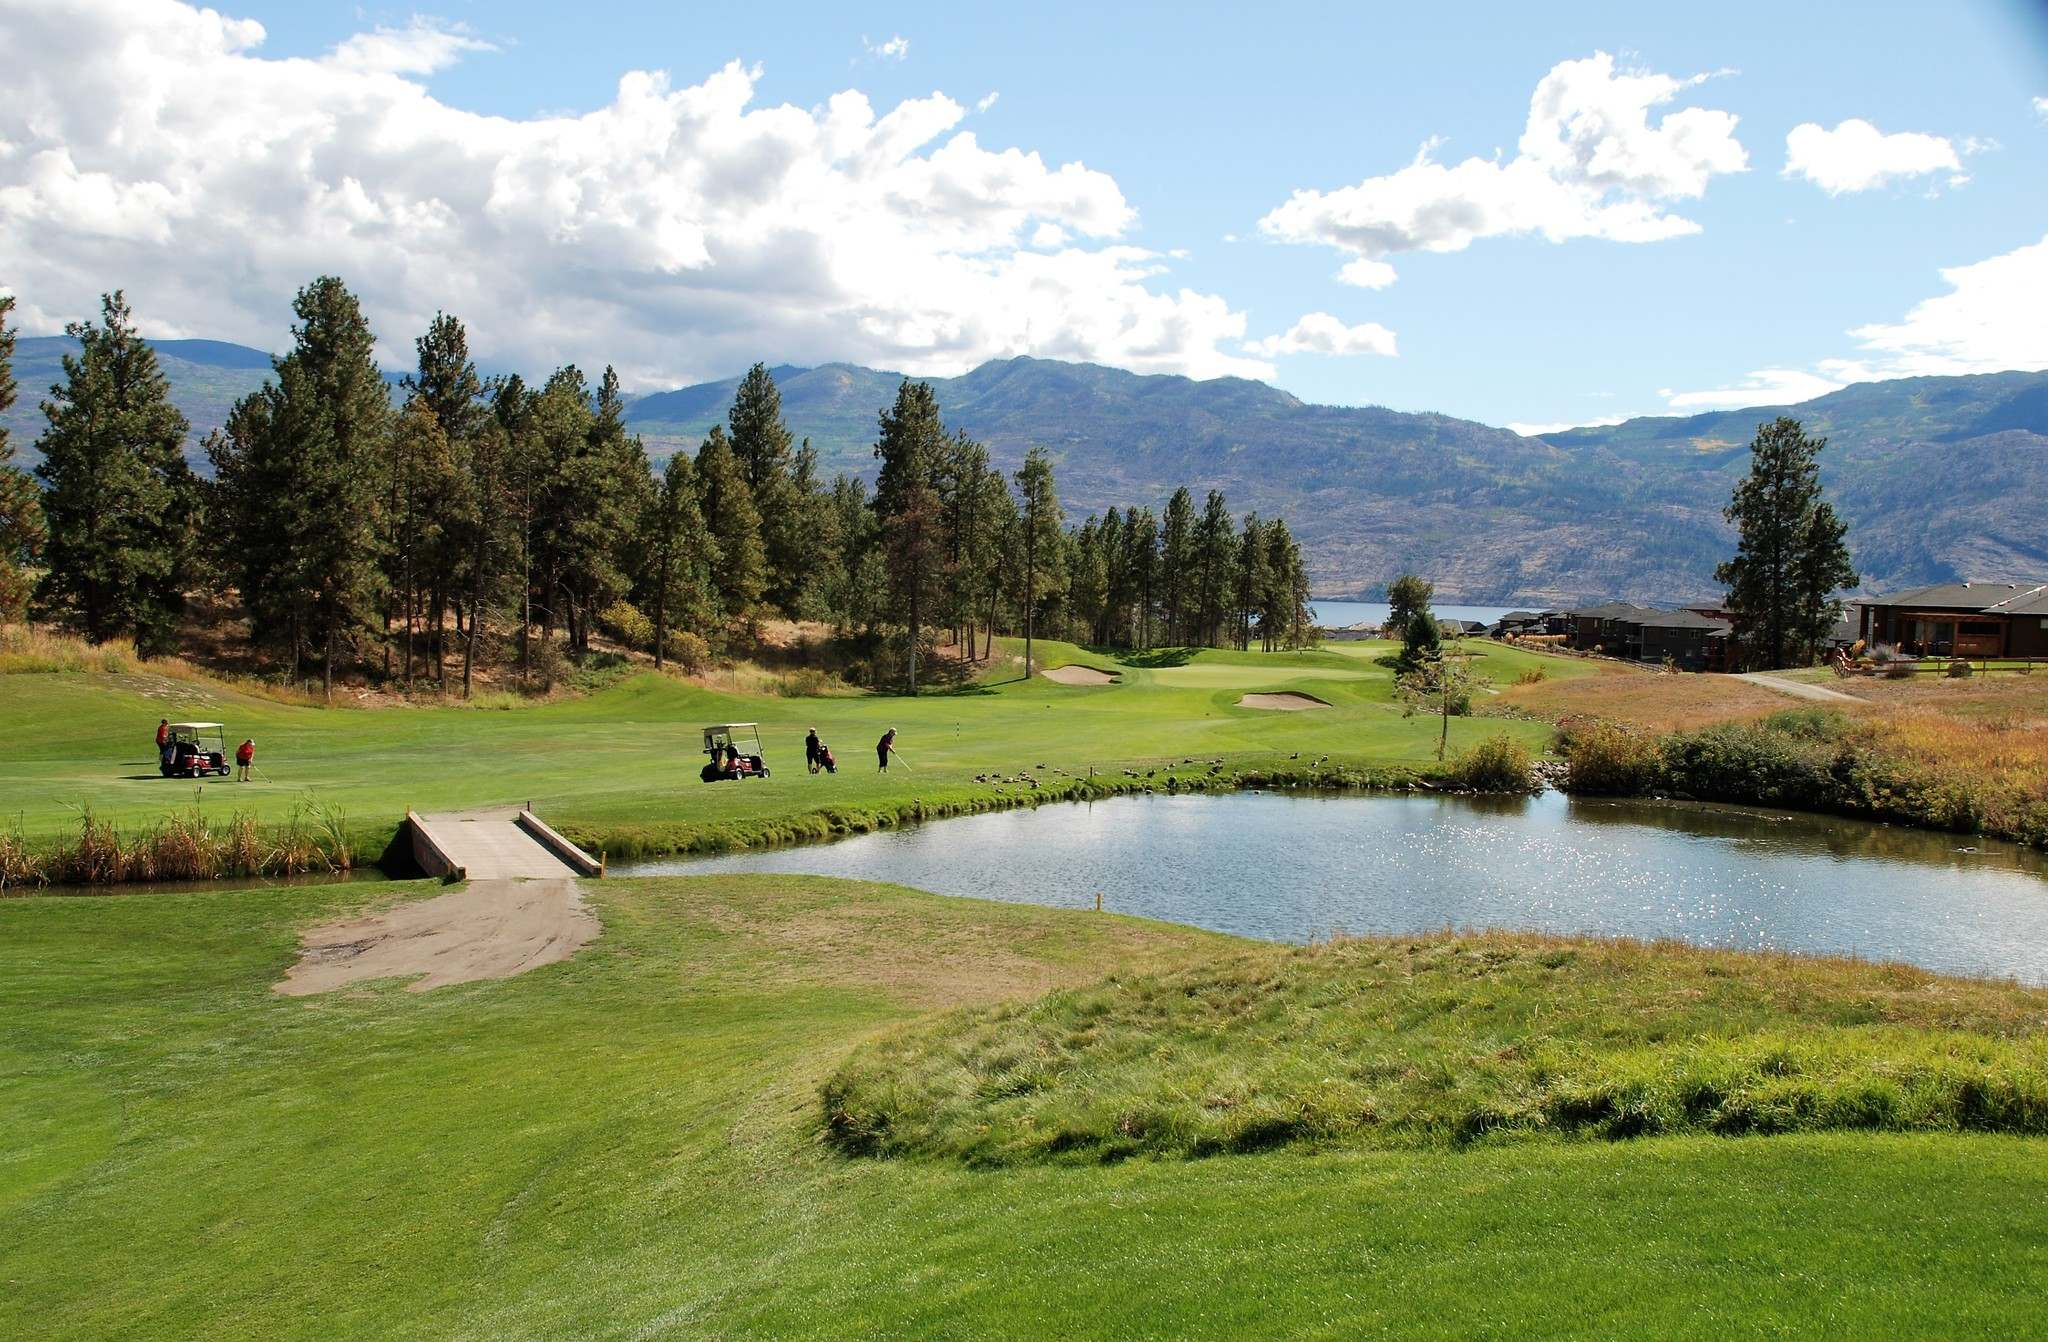 Ron Pradinuk / Winnipeg Free Press</p><p>The Two Eagles golf course in West Kelowna offers a less challenging layout than other courses in the area, but its beautiful scenery makes it easy to recommend, possibly as a warm-up for future rounds. </p>